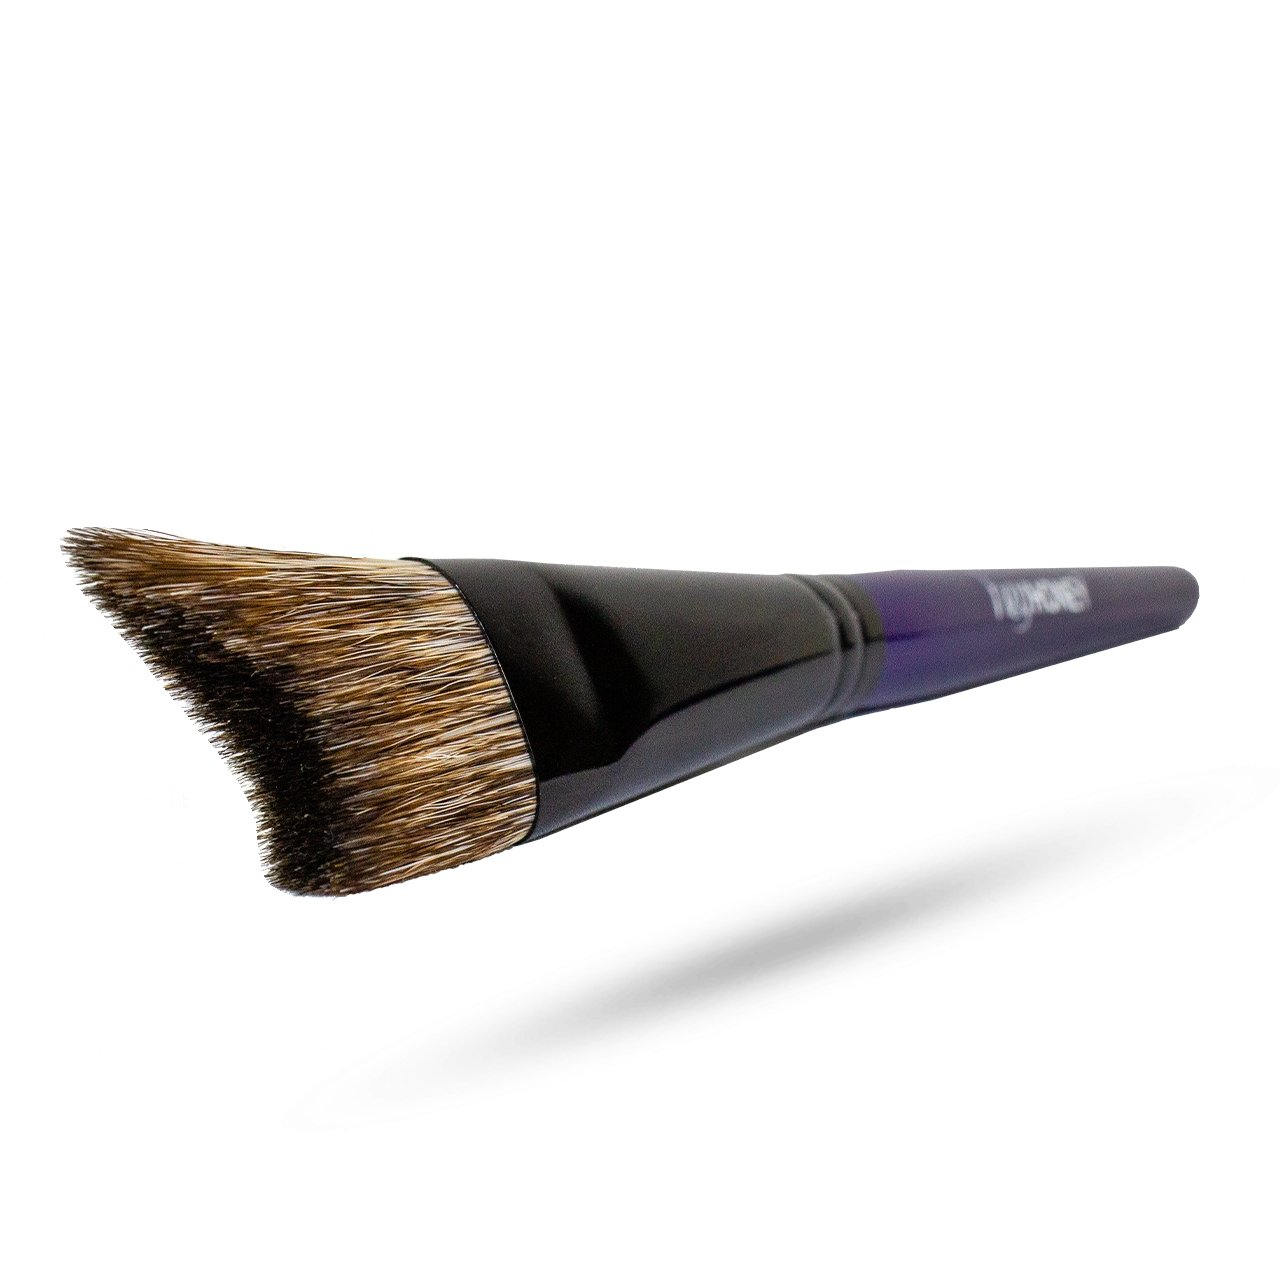 Hey Honey Facial Mask Brush - is a cruelty-free product.